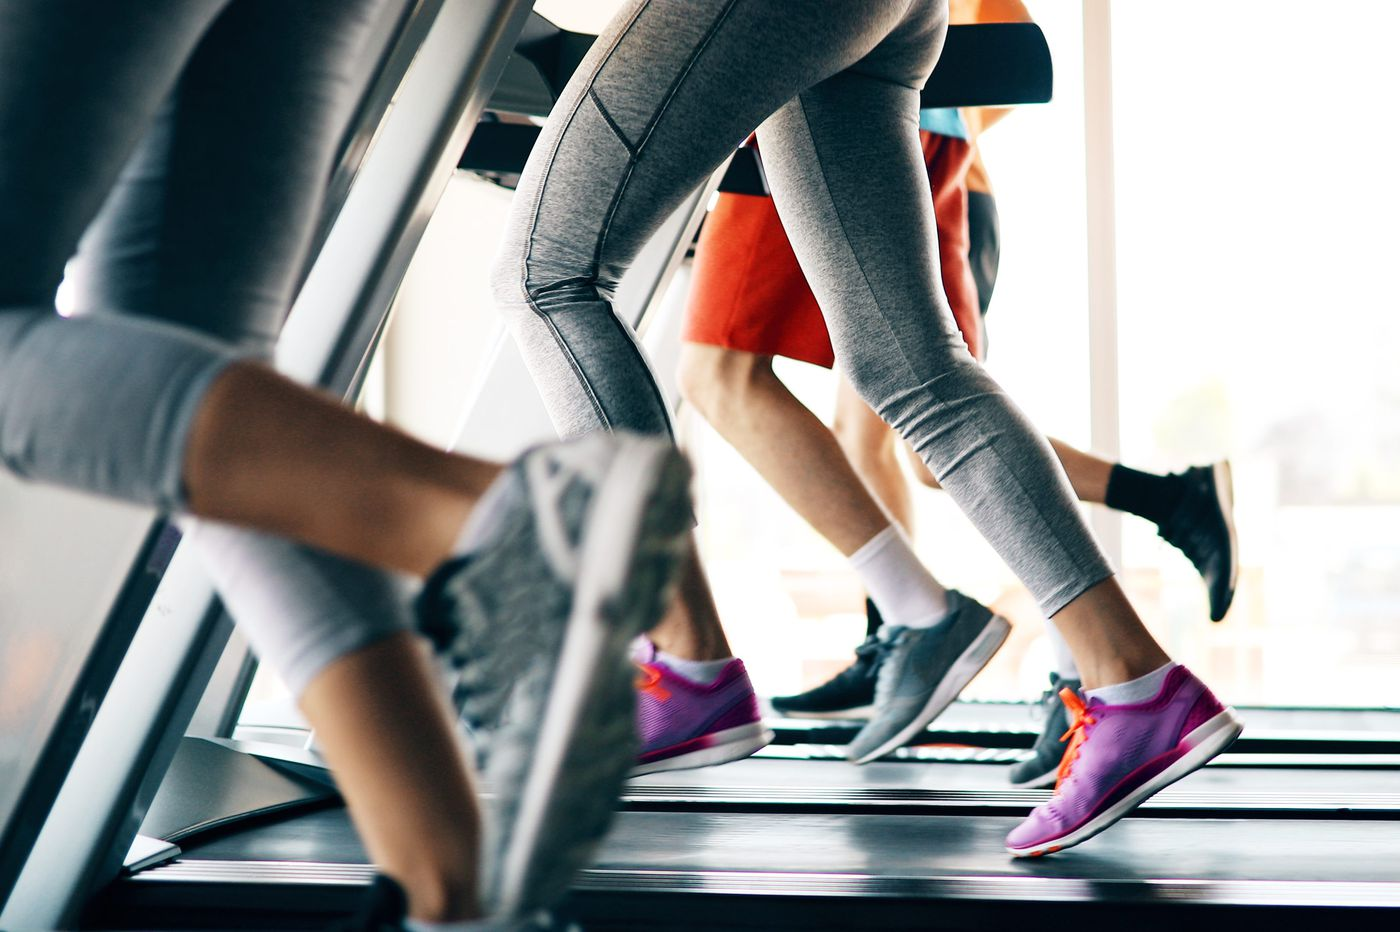 New study shows exercise can help with weight loss. But are you doing enough?